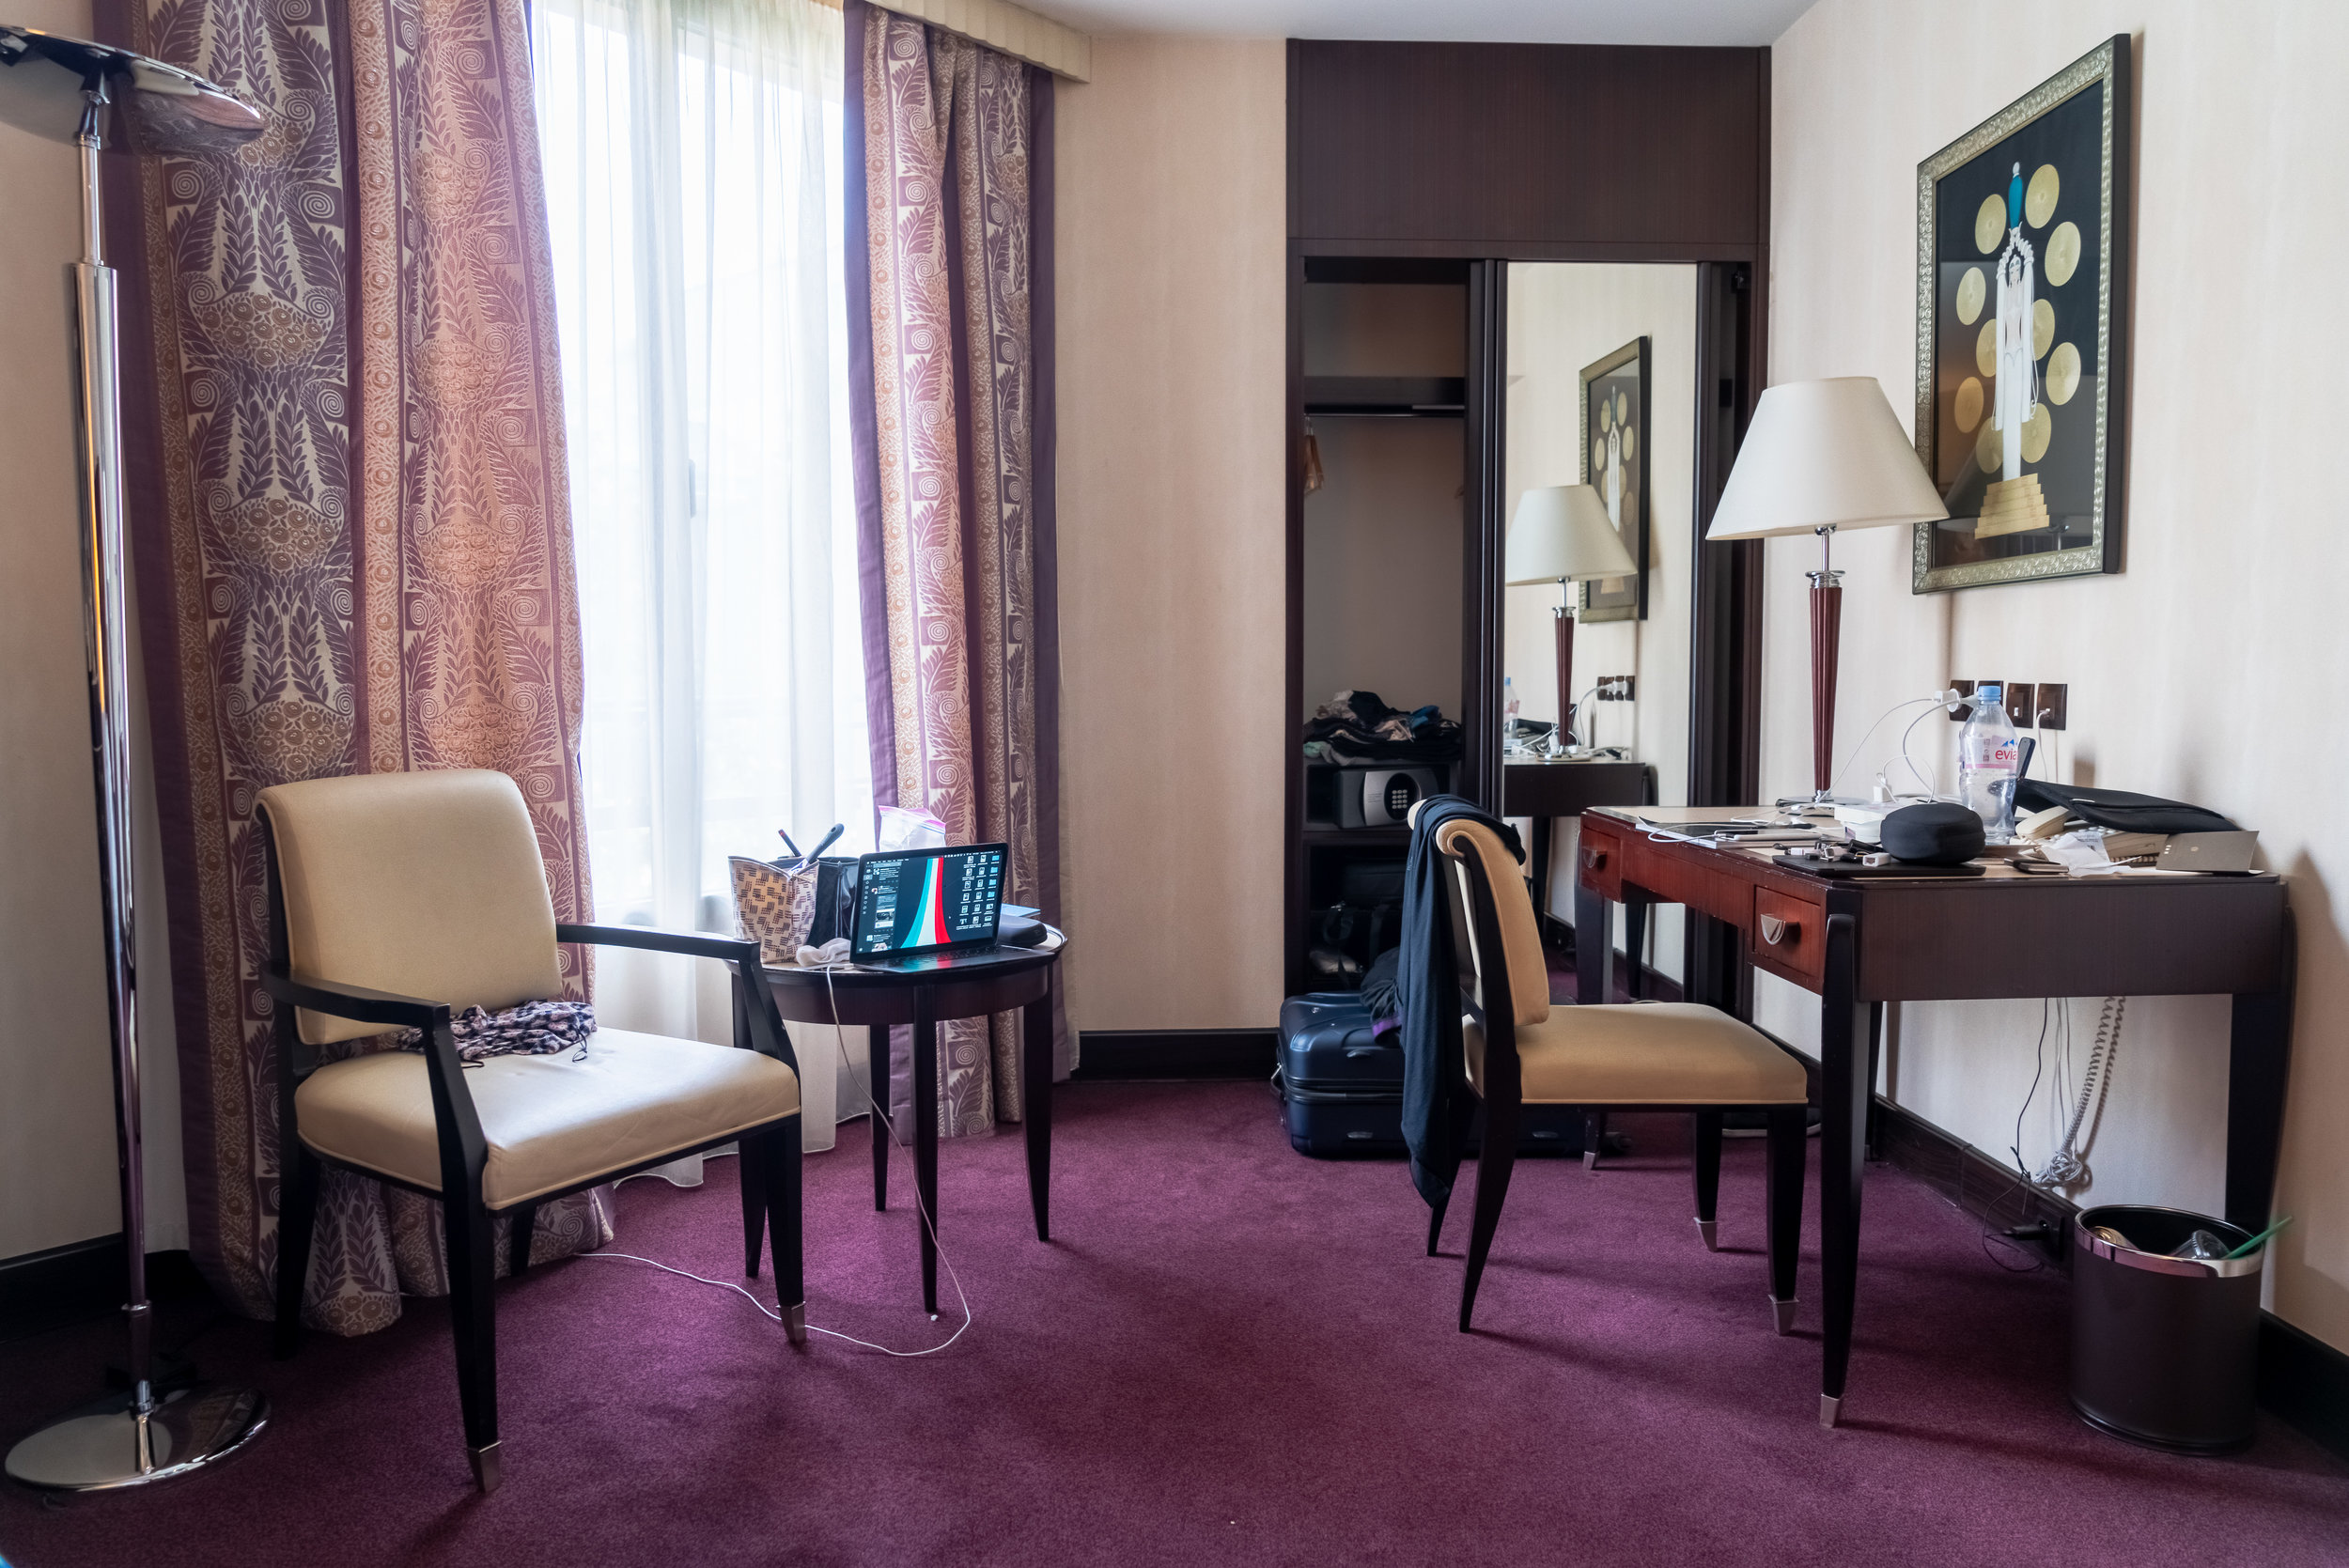 Hotel du Collectionneur | 51-57 Rue de Courcelles, 75008 Paris, France